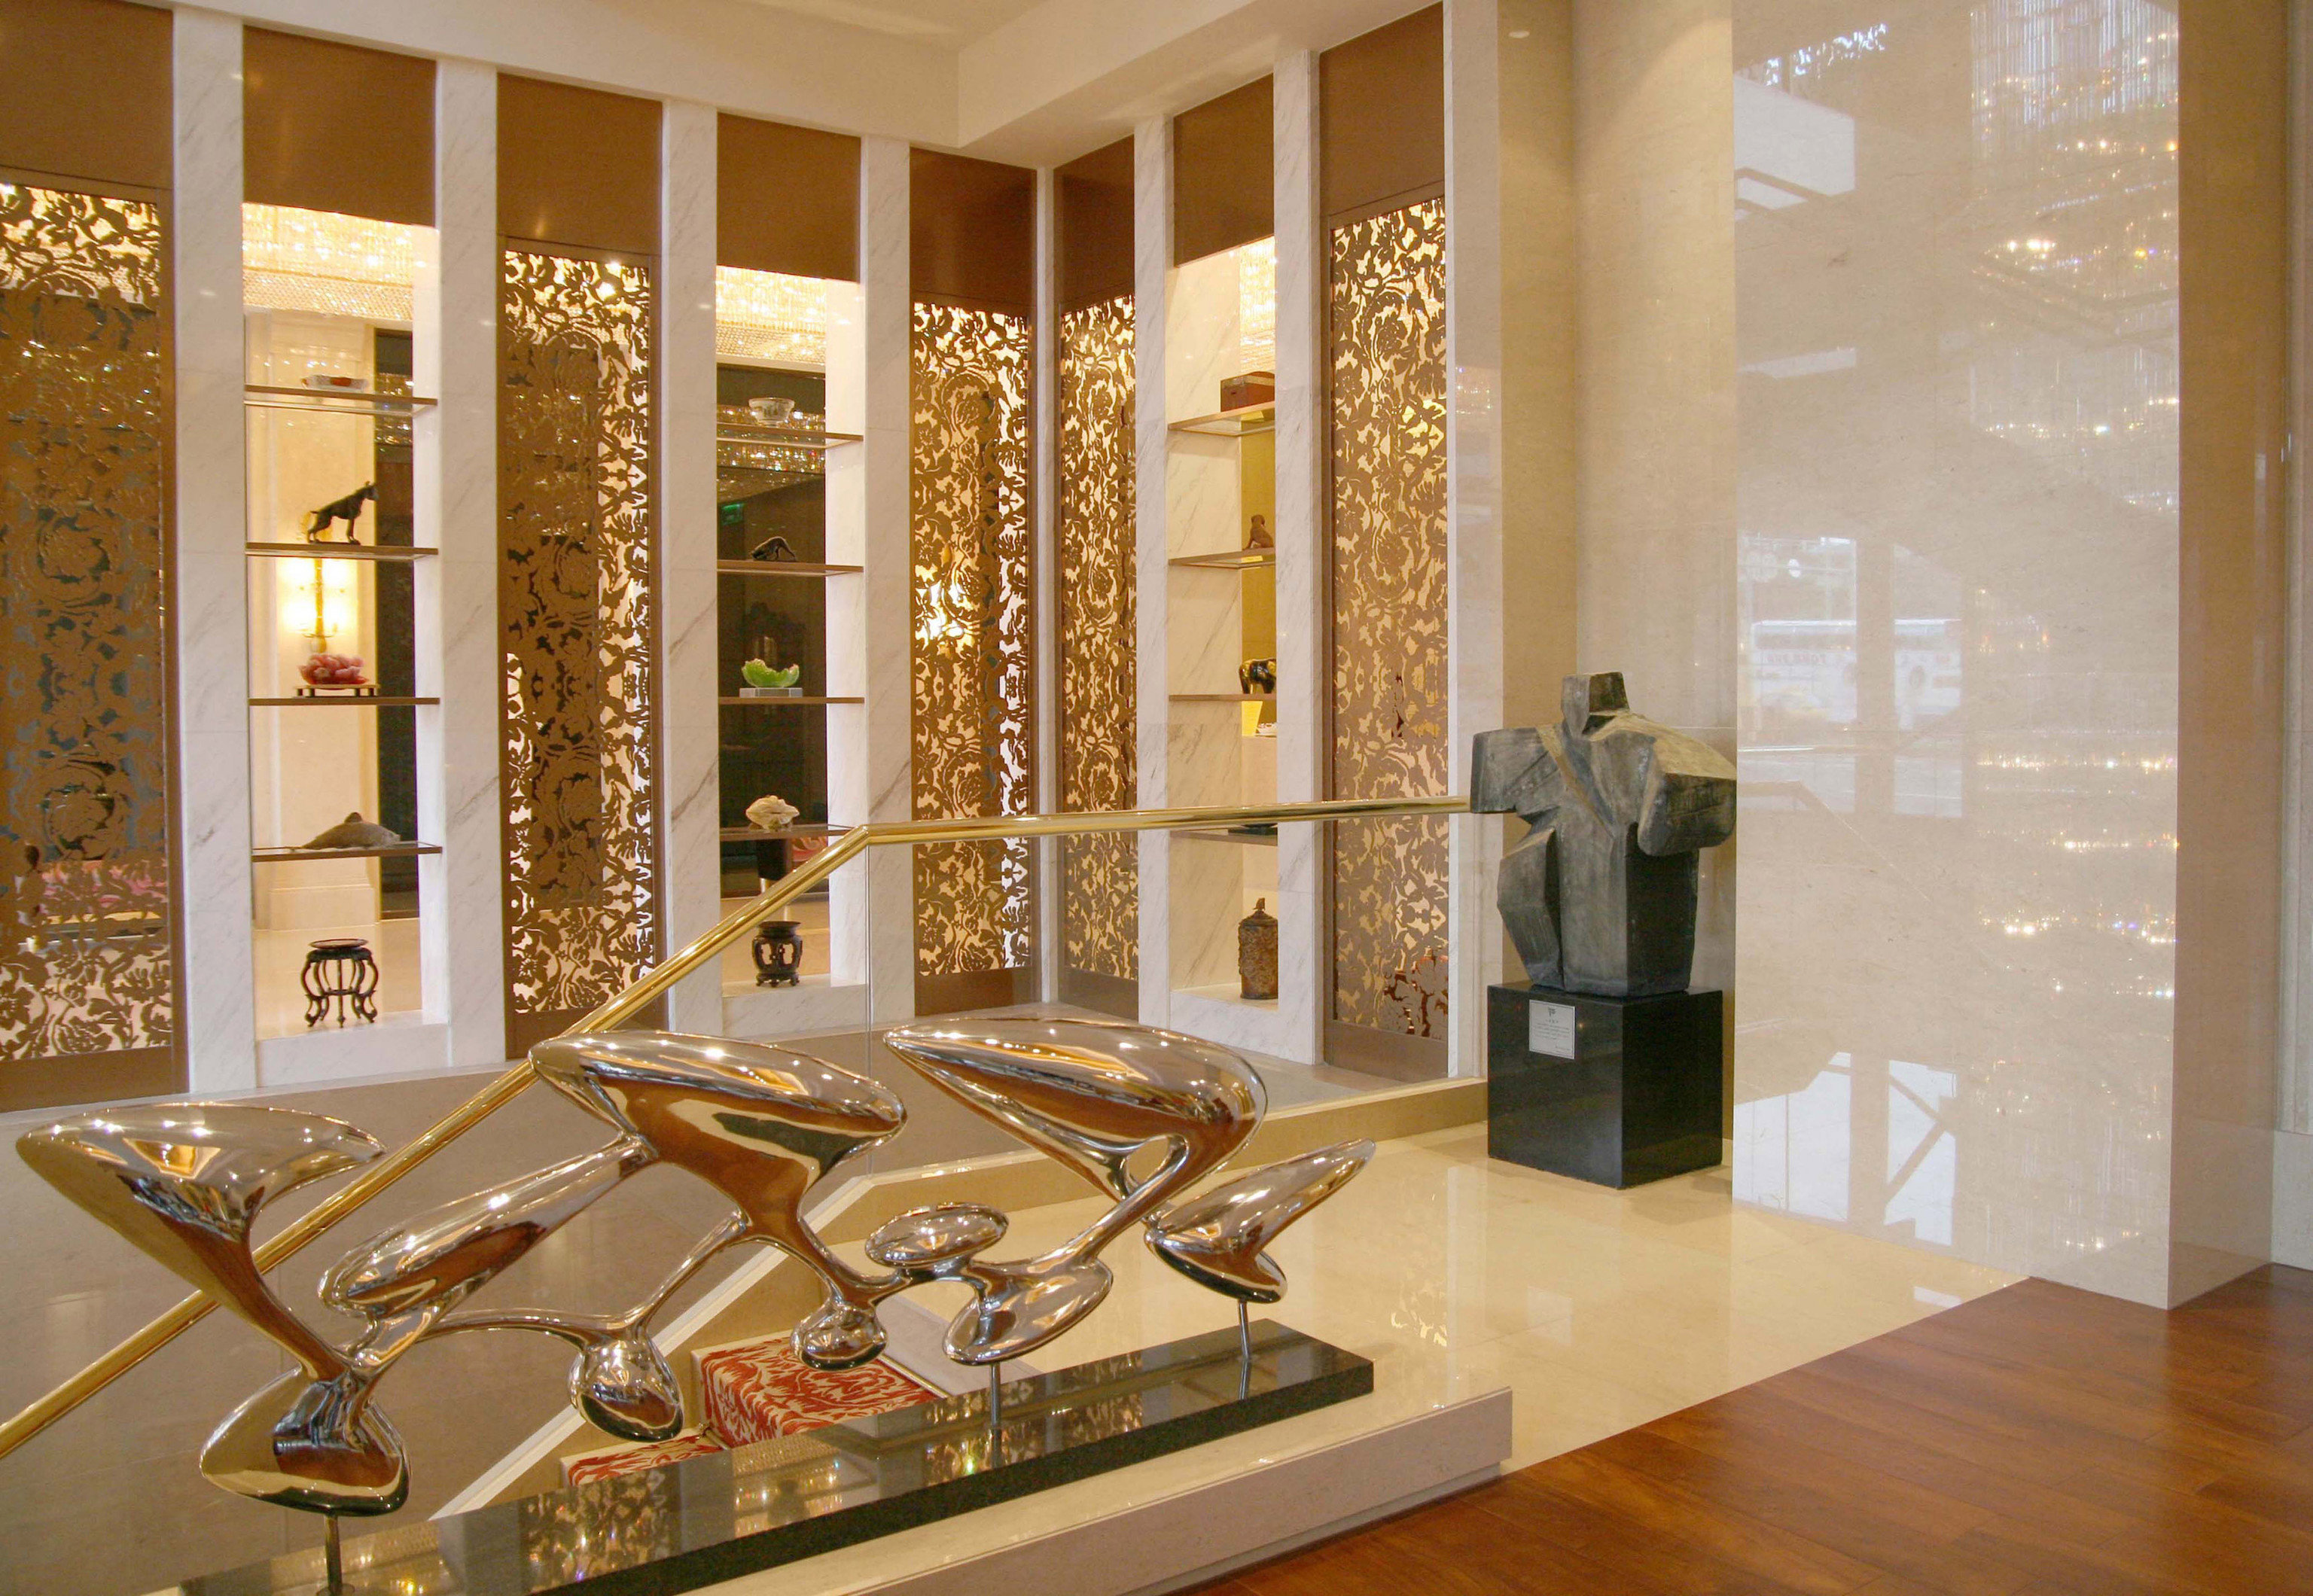 Lobby tourist attraction living room counter glass